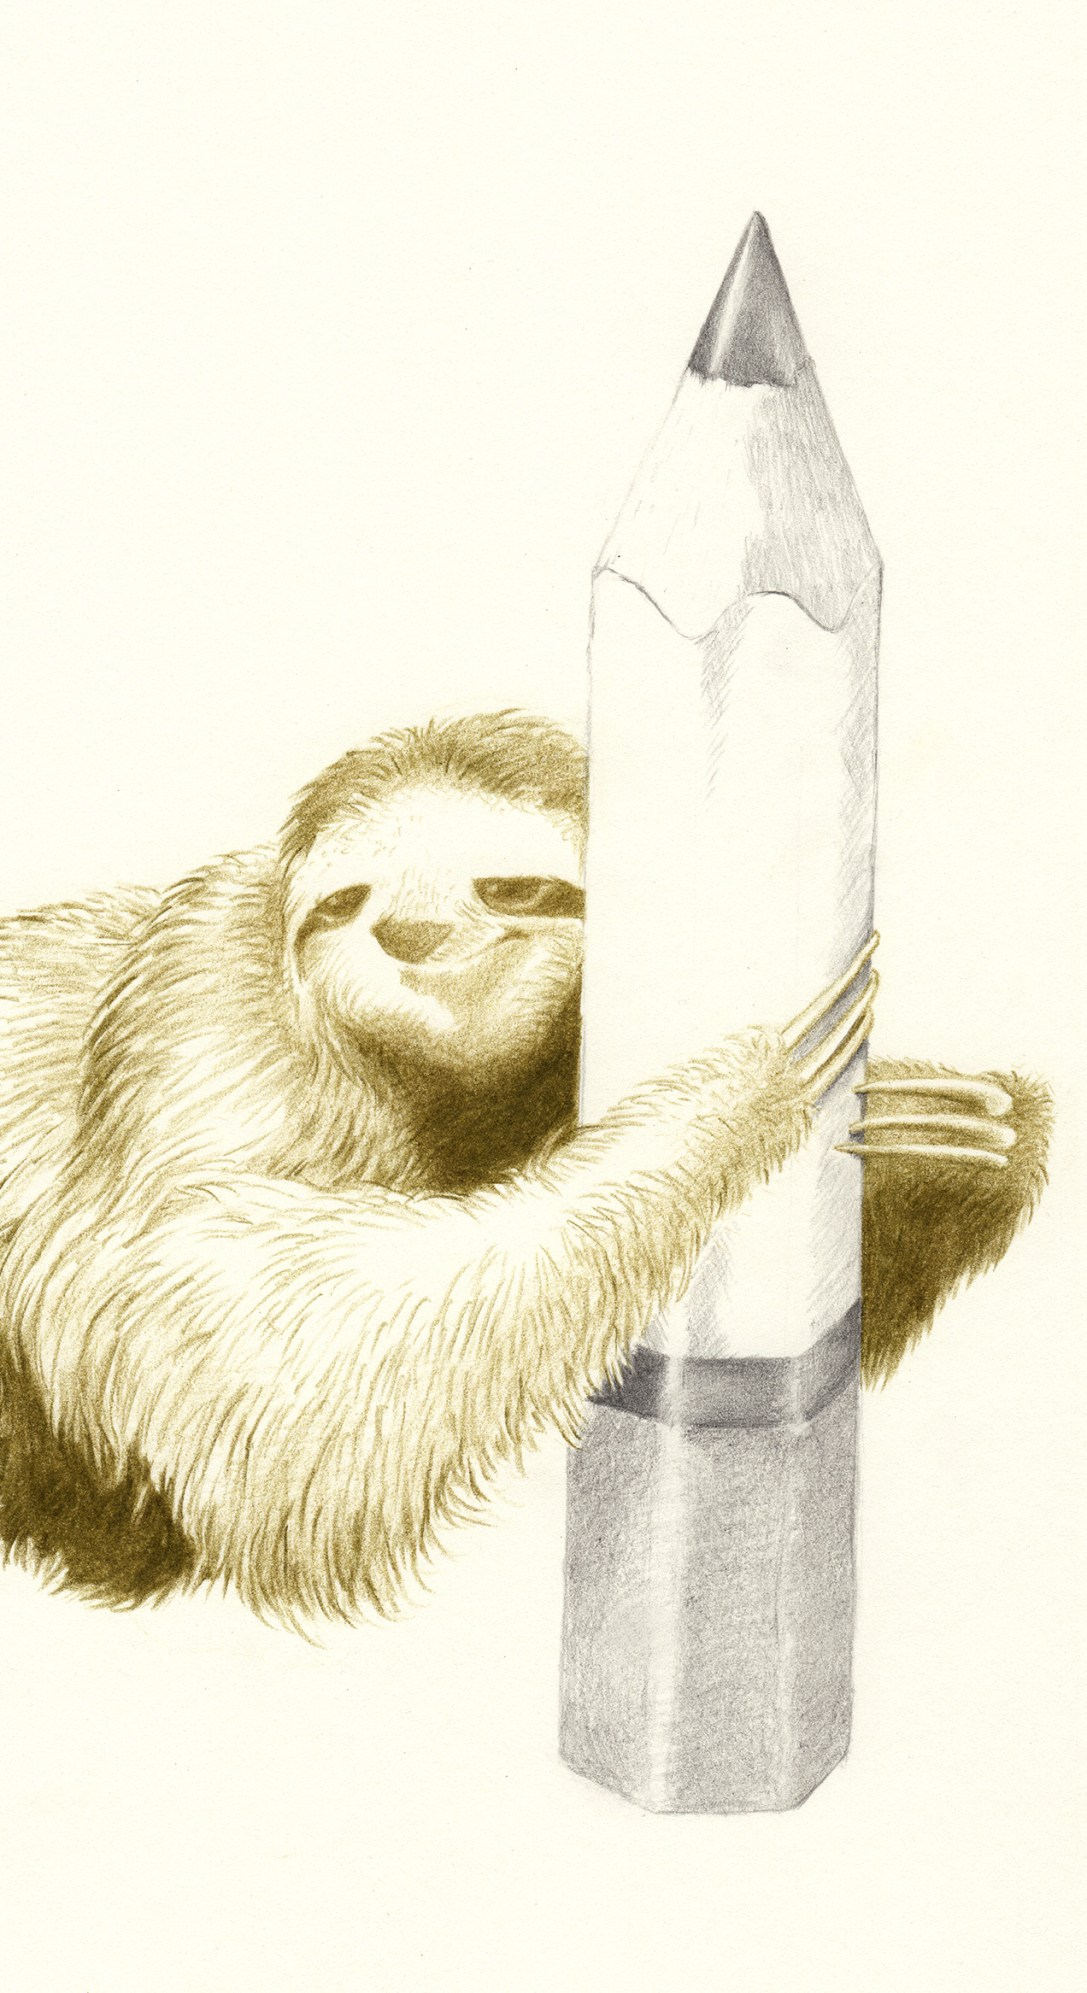 SLOTH I | pencil on paper